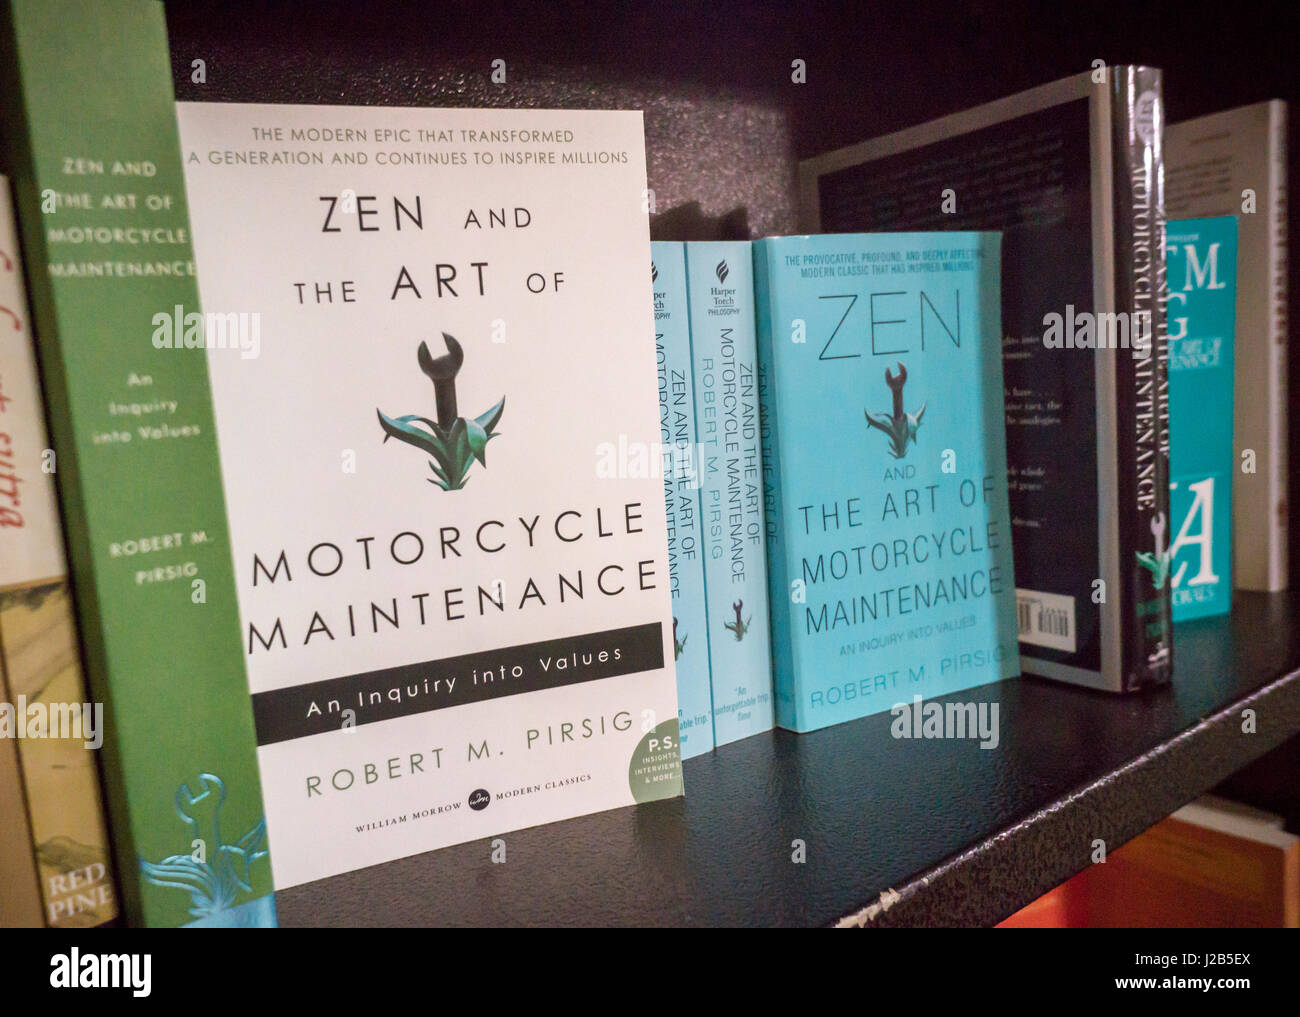 Copies of 'Zen and the Art of Motorcycle Maintenance: An Inquiry into Values' by Robert M. Pirsig is seen - Stock Image